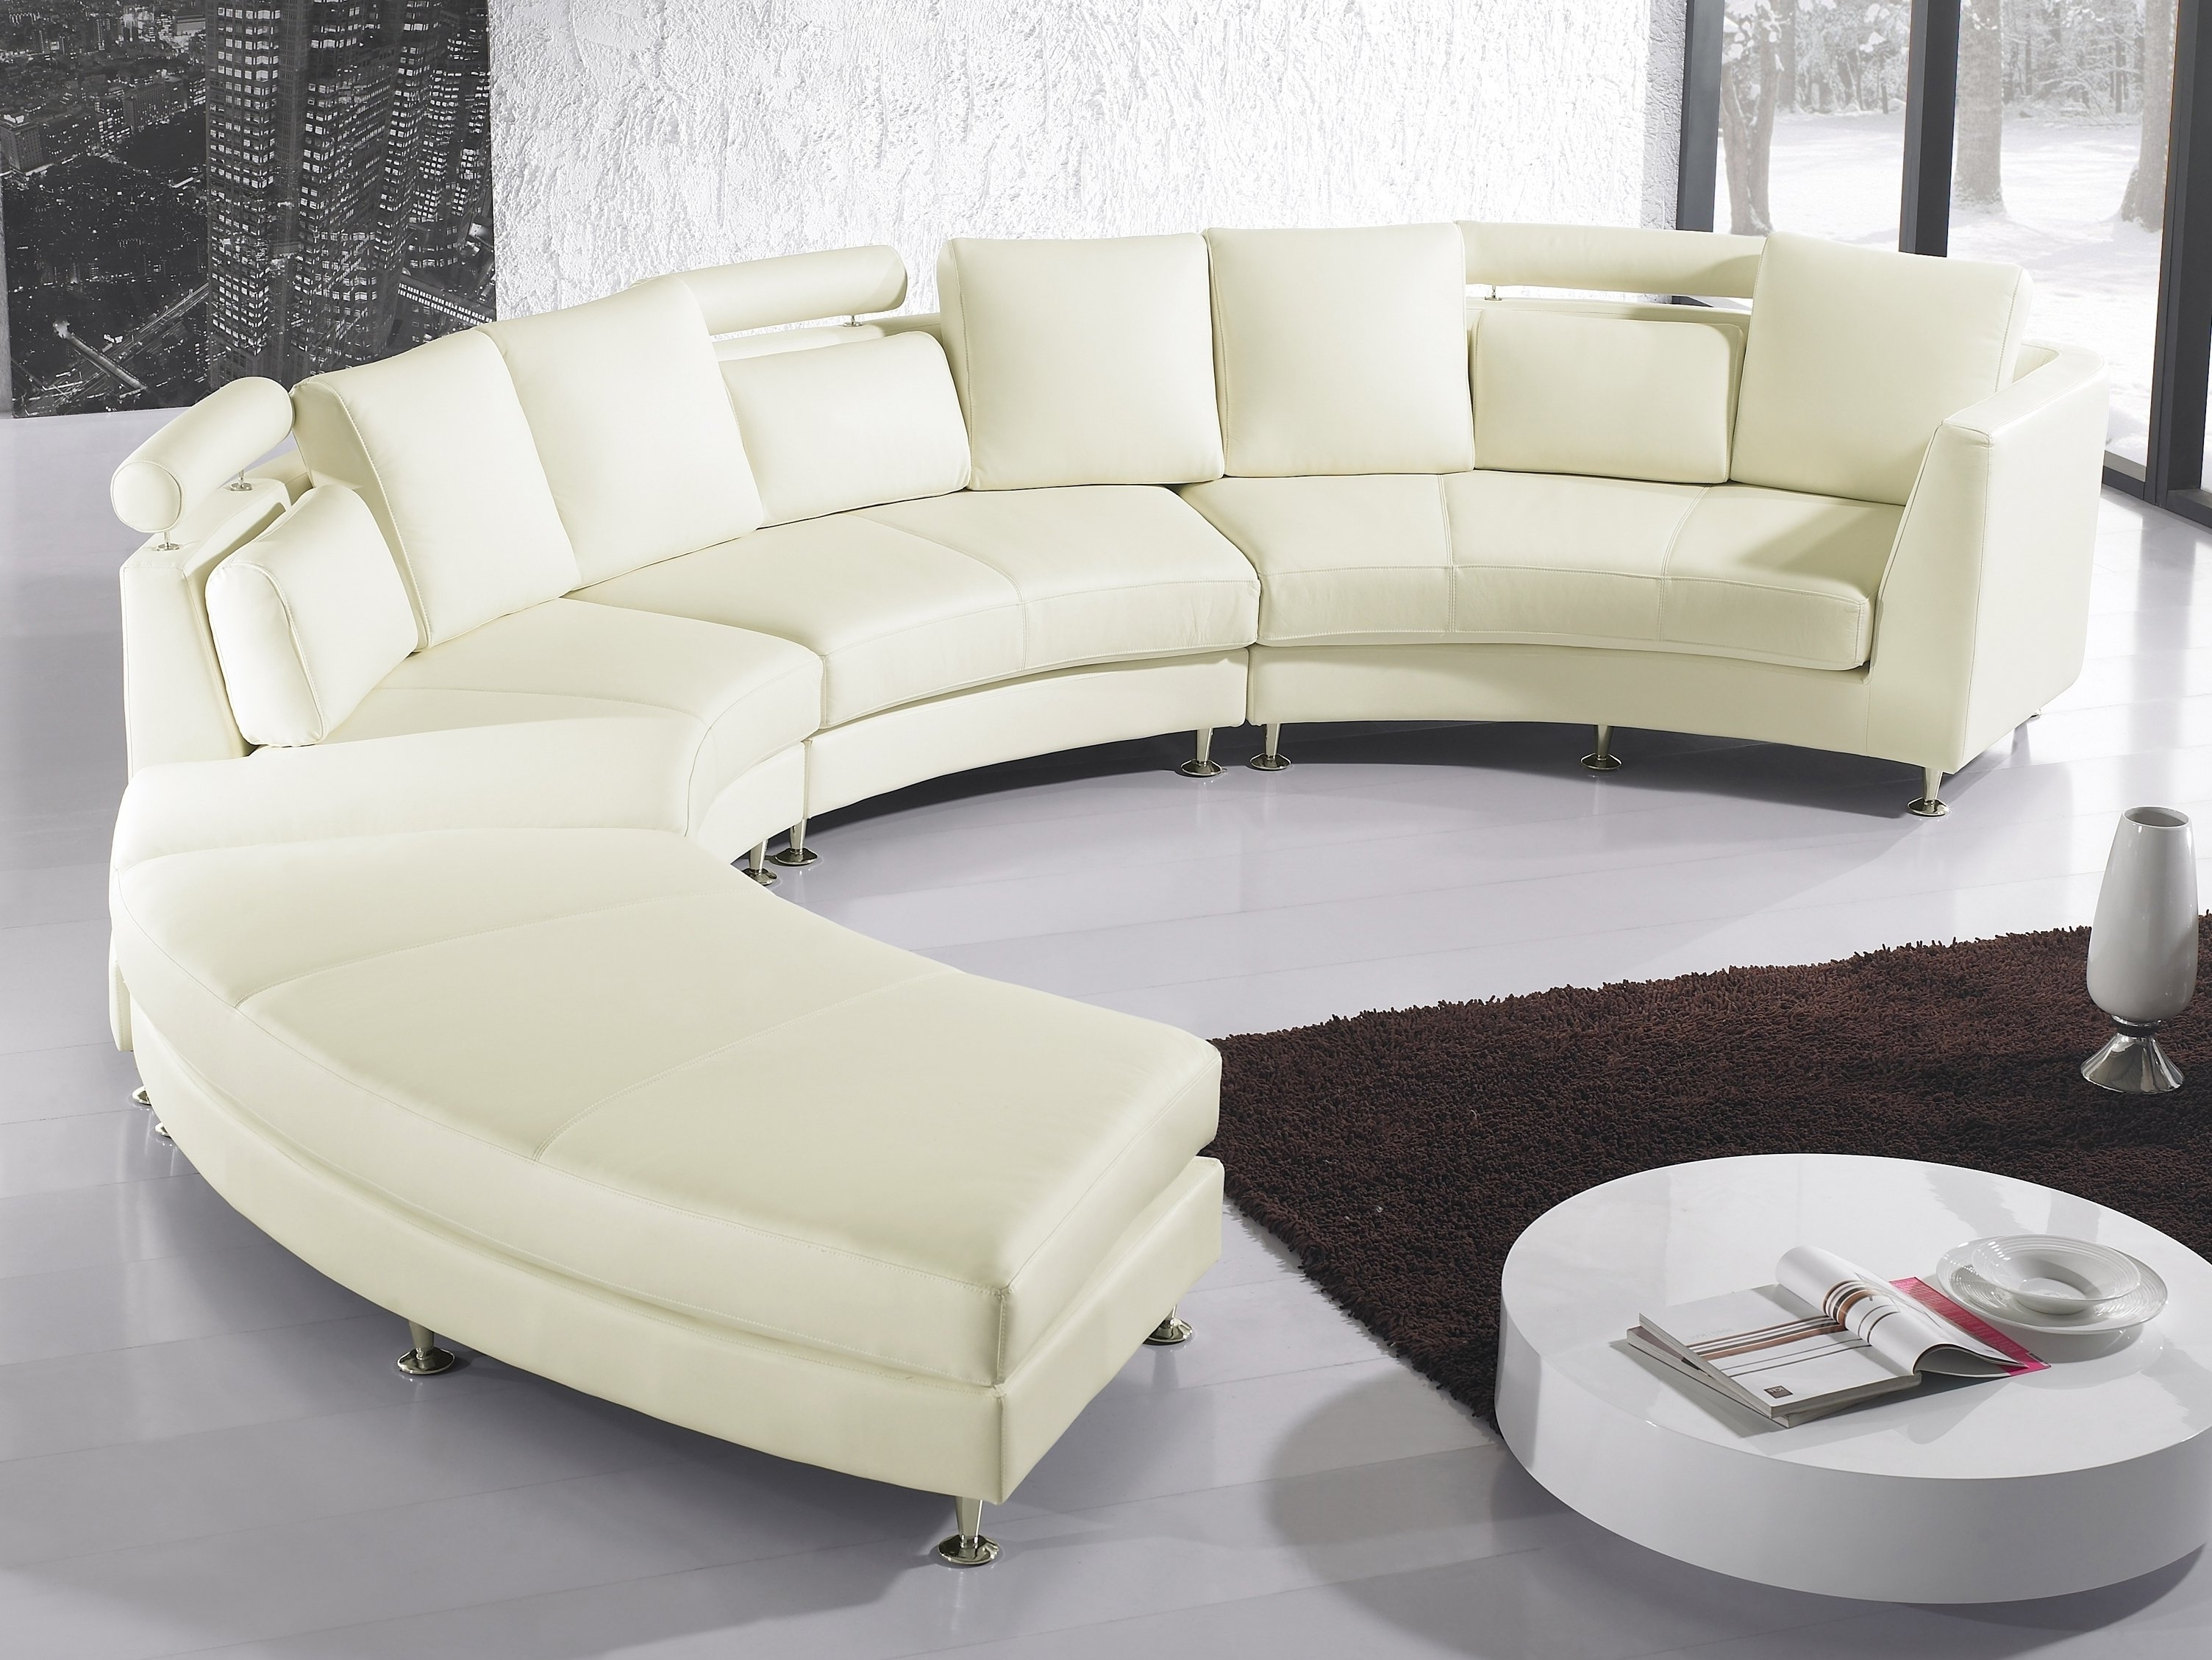 Trendy Hickory Nc Sectional Sofas In Sofas Center Curved Sectional Sofas Hickory Nc Luxury Sofa With (View 11 of 15)